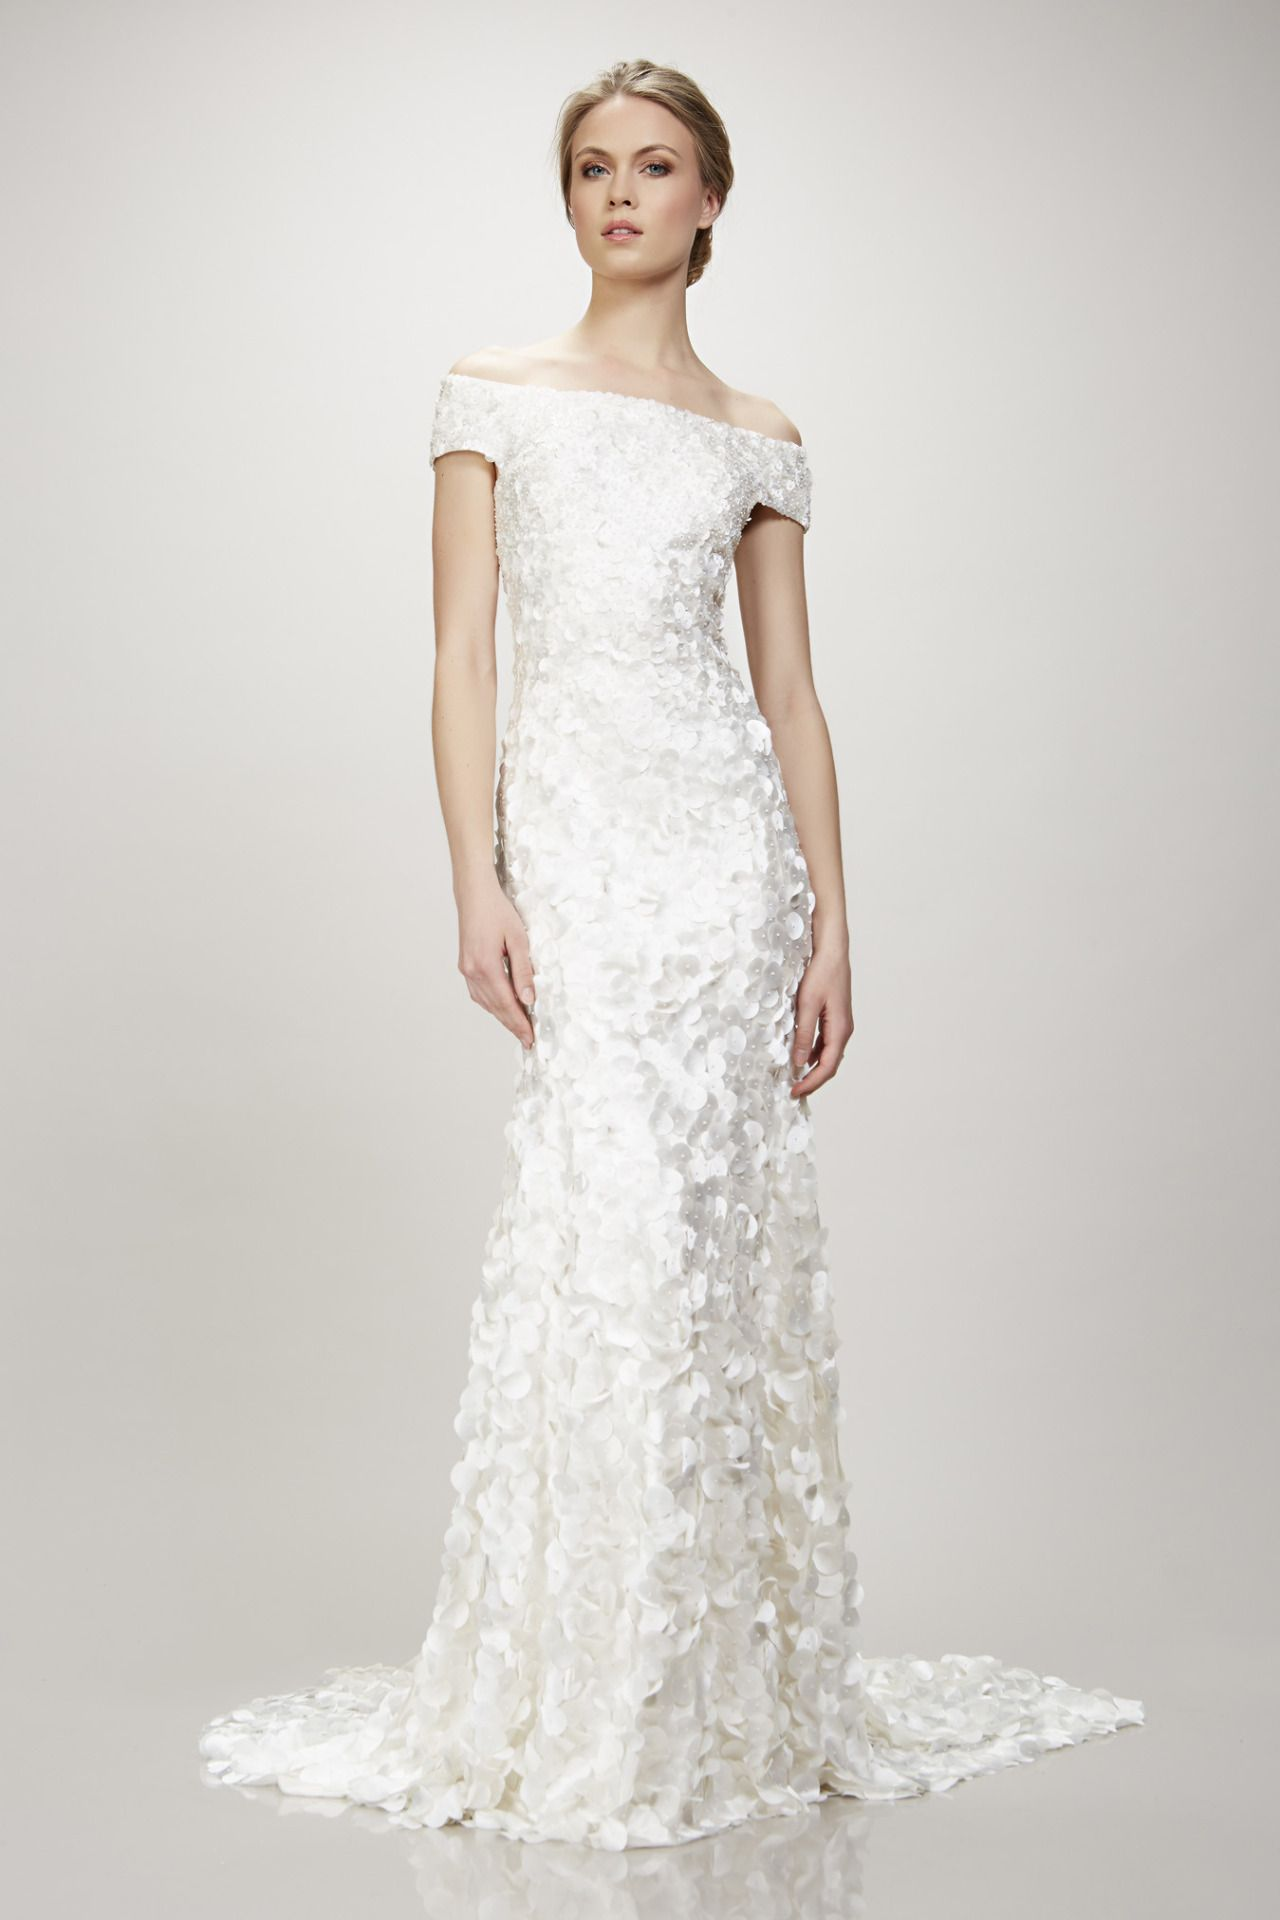 Best wedding dresses for 50 year olds  Pin by Carol Pitchford on Wedding Dresses  Pinterest  Wedding